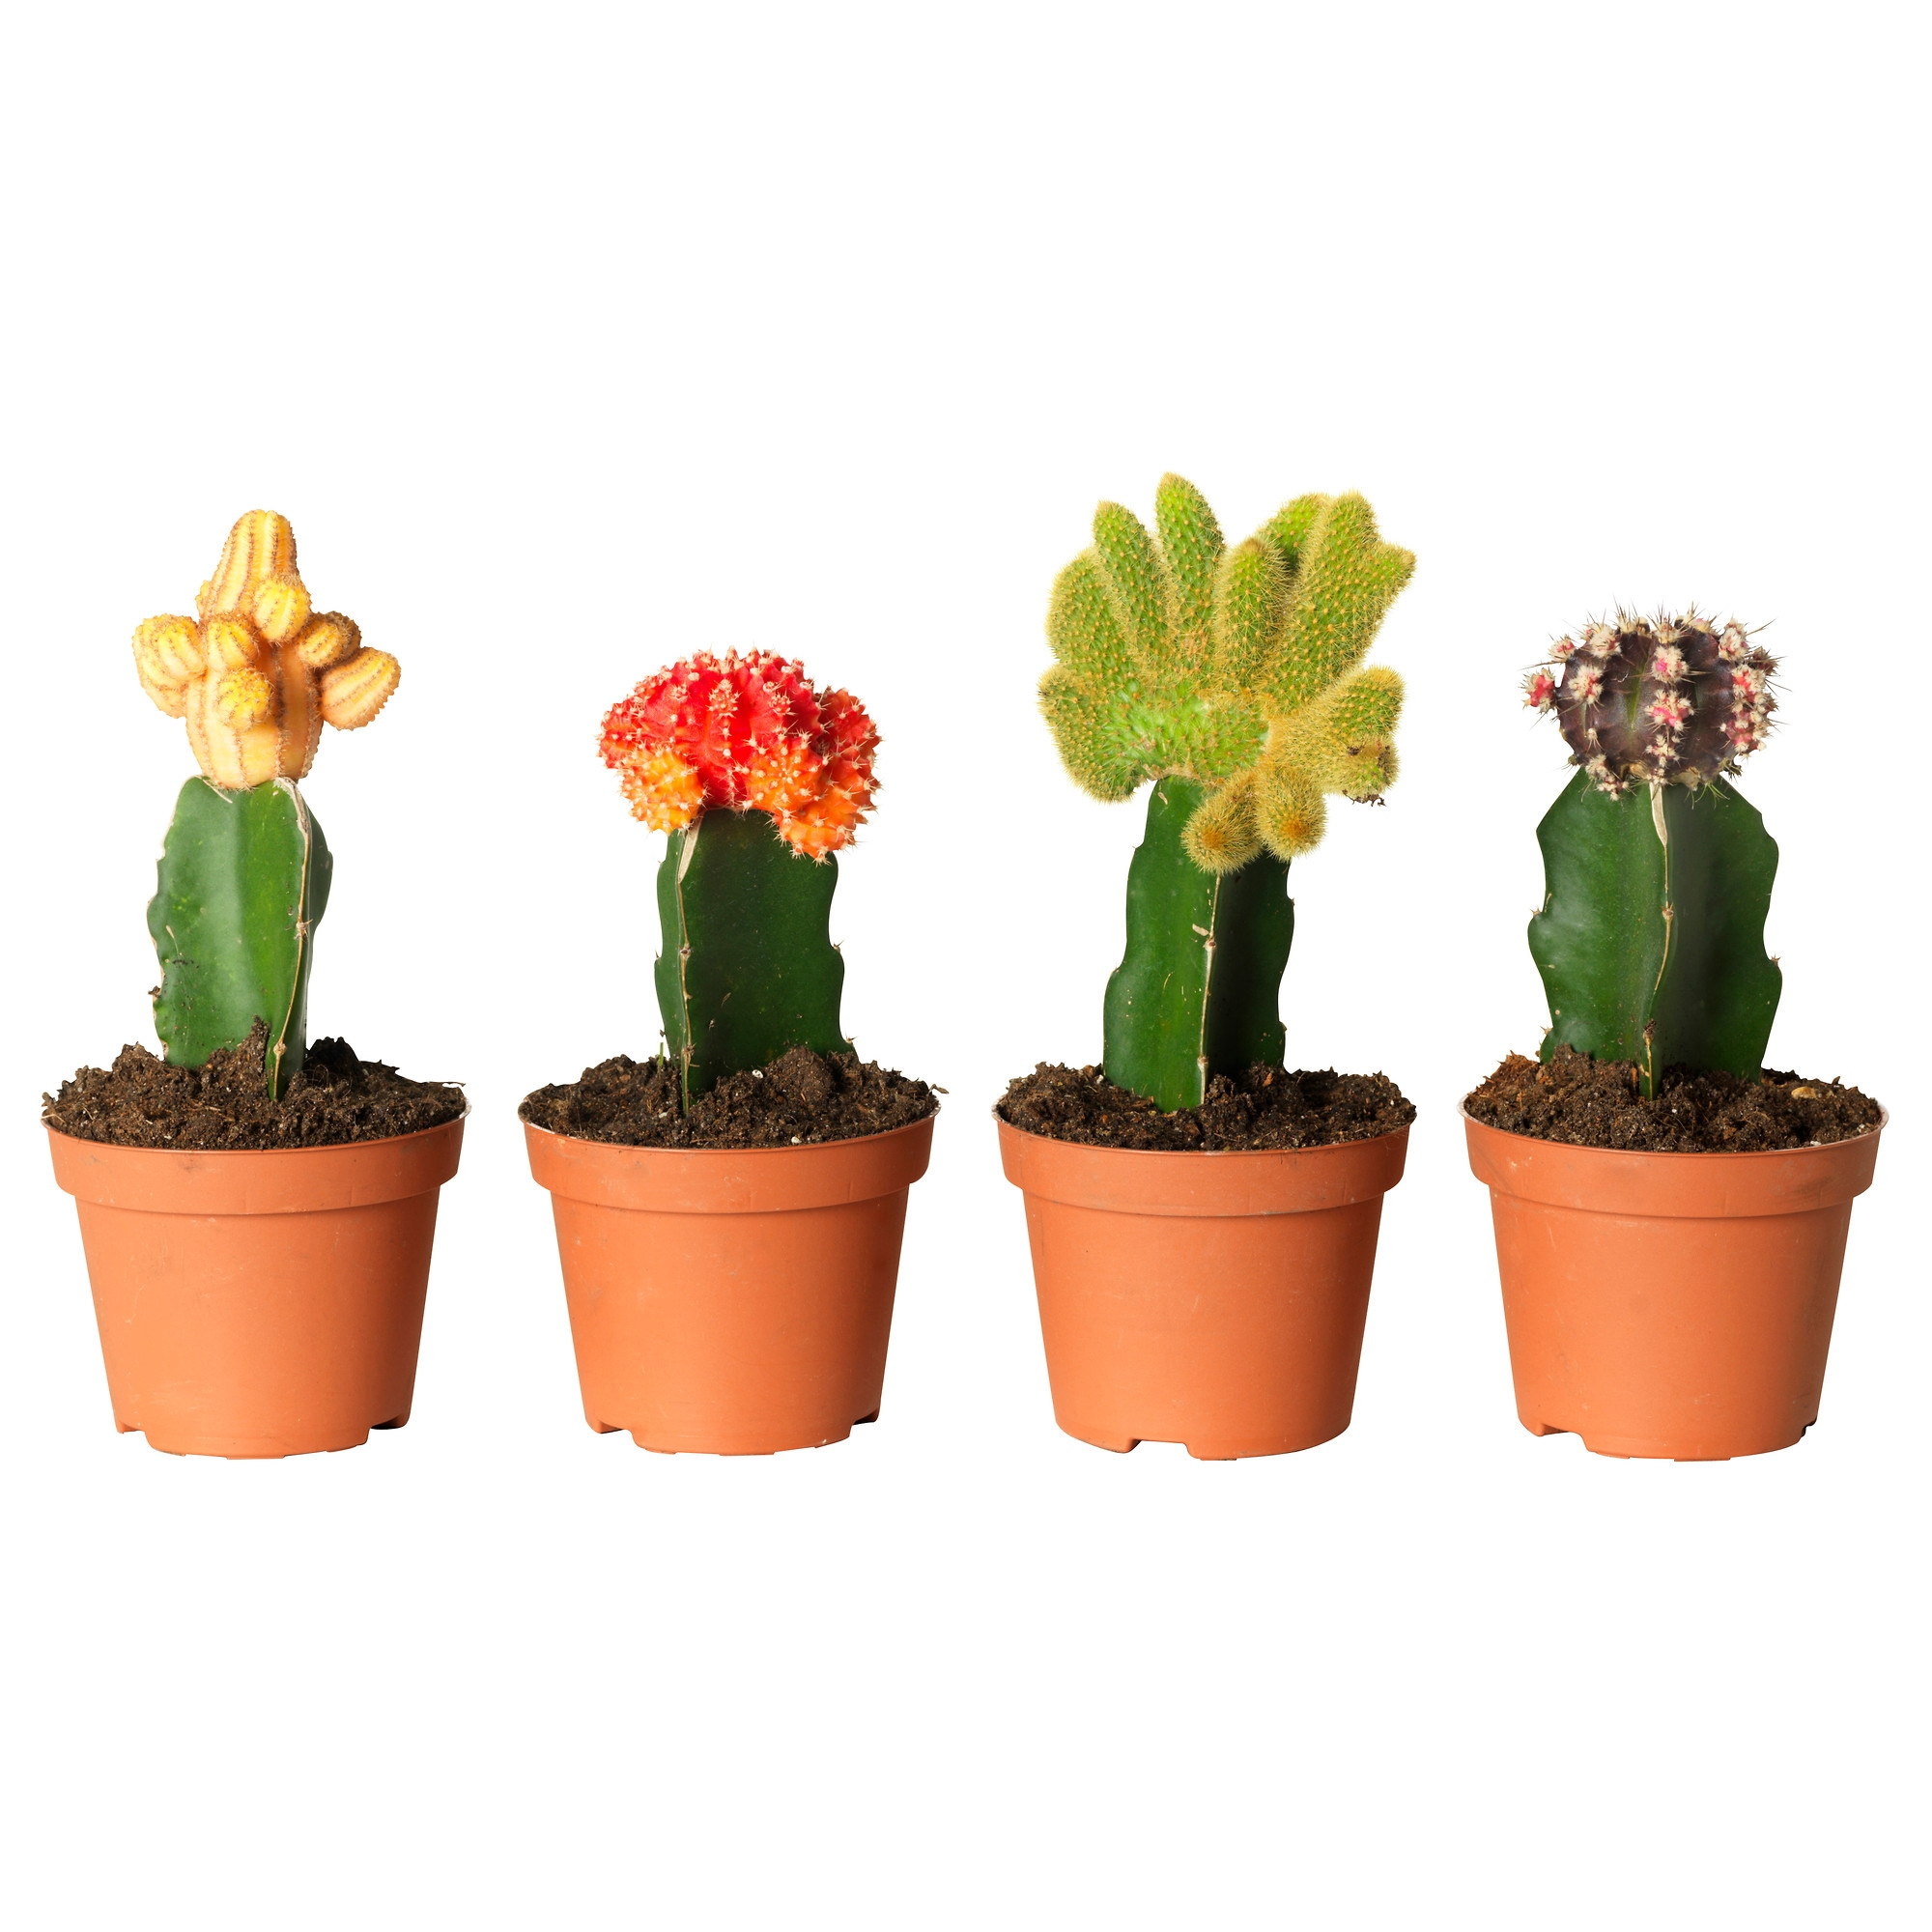 cactus plant in pot images galleries with a bite. Black Bedroom Furniture Sets. Home Design Ideas